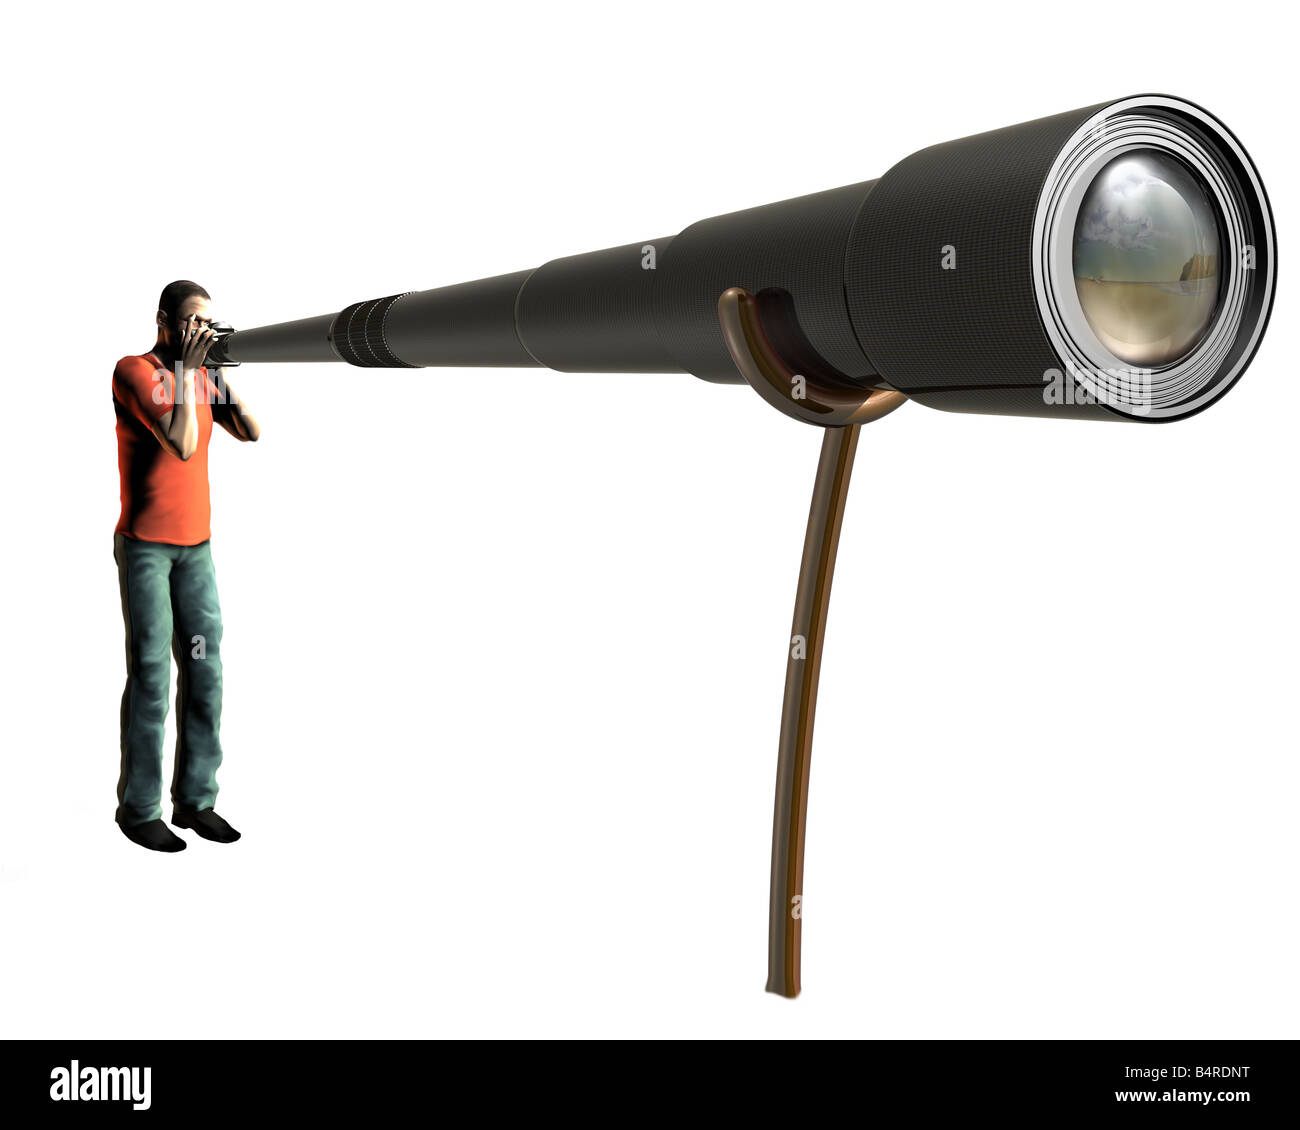 Isolated illustration of a photographer using a very long lens - Stock Image